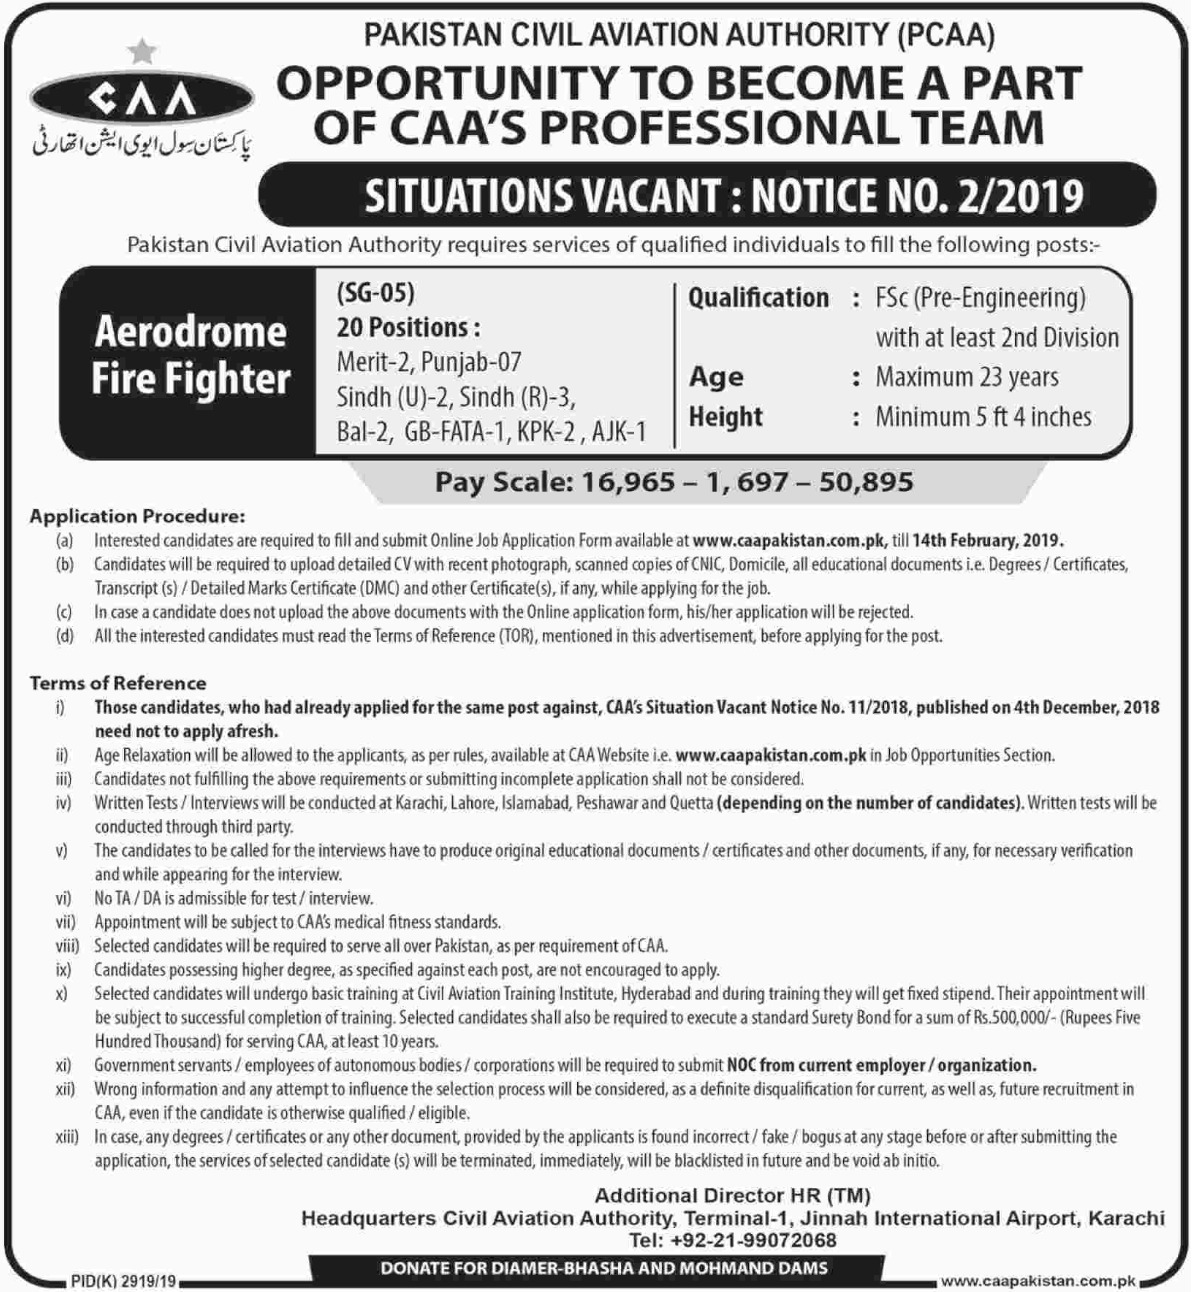 PCAA Pakistan Civil Aviation Authority Jobs 2019